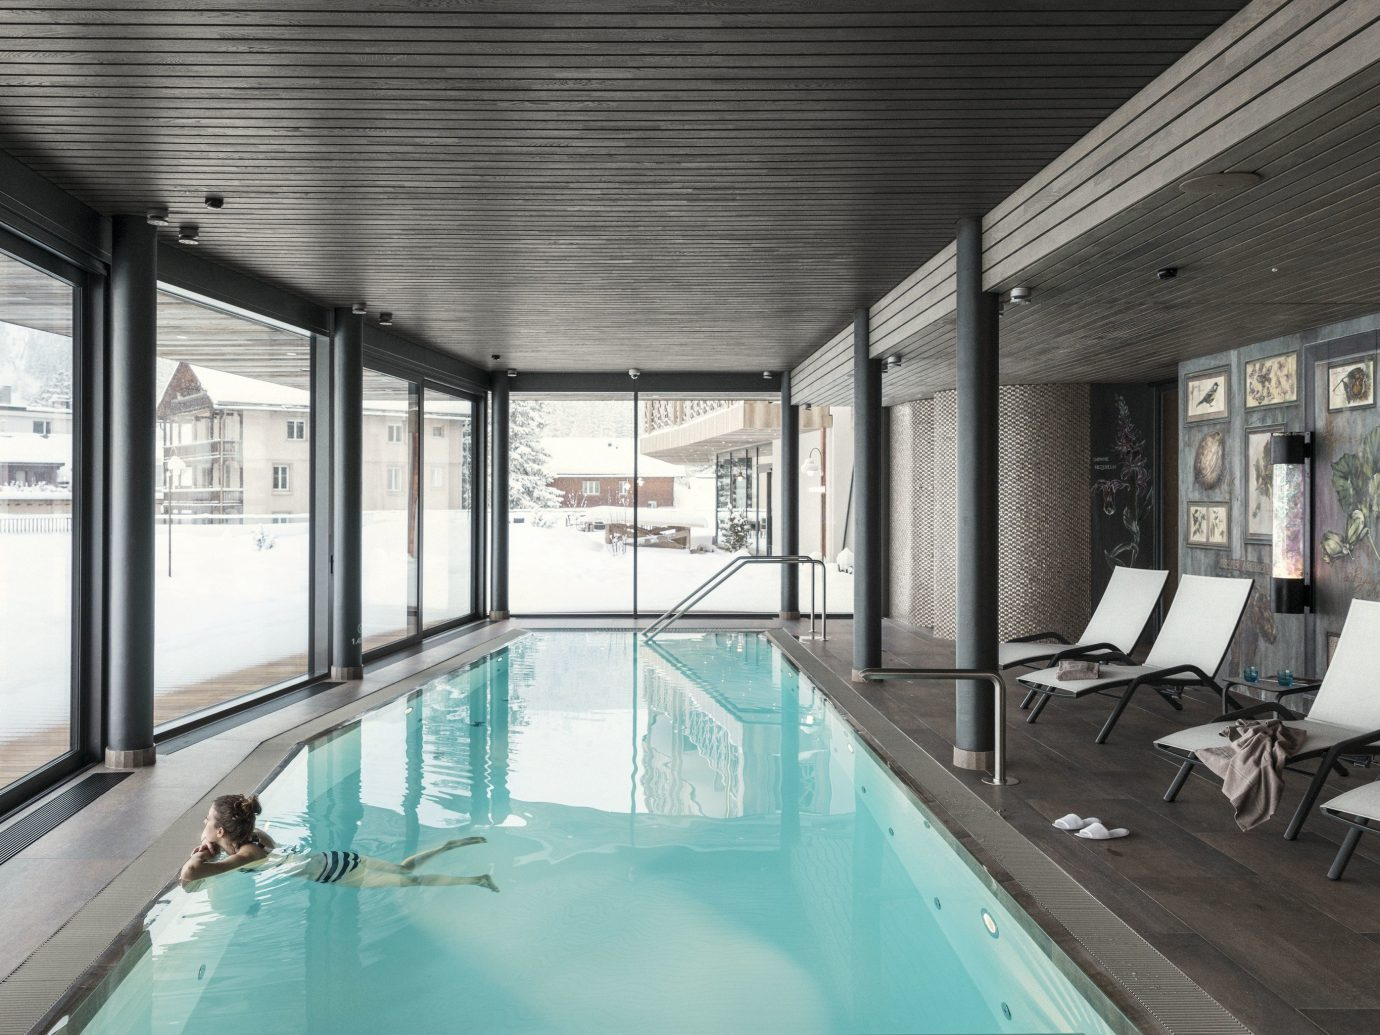 Boutique Hotels Hotels Outdoors + Adventure Winter indoor window ceiling property room swimming pool real estate interior design estate daylighting apartment amenity furniture